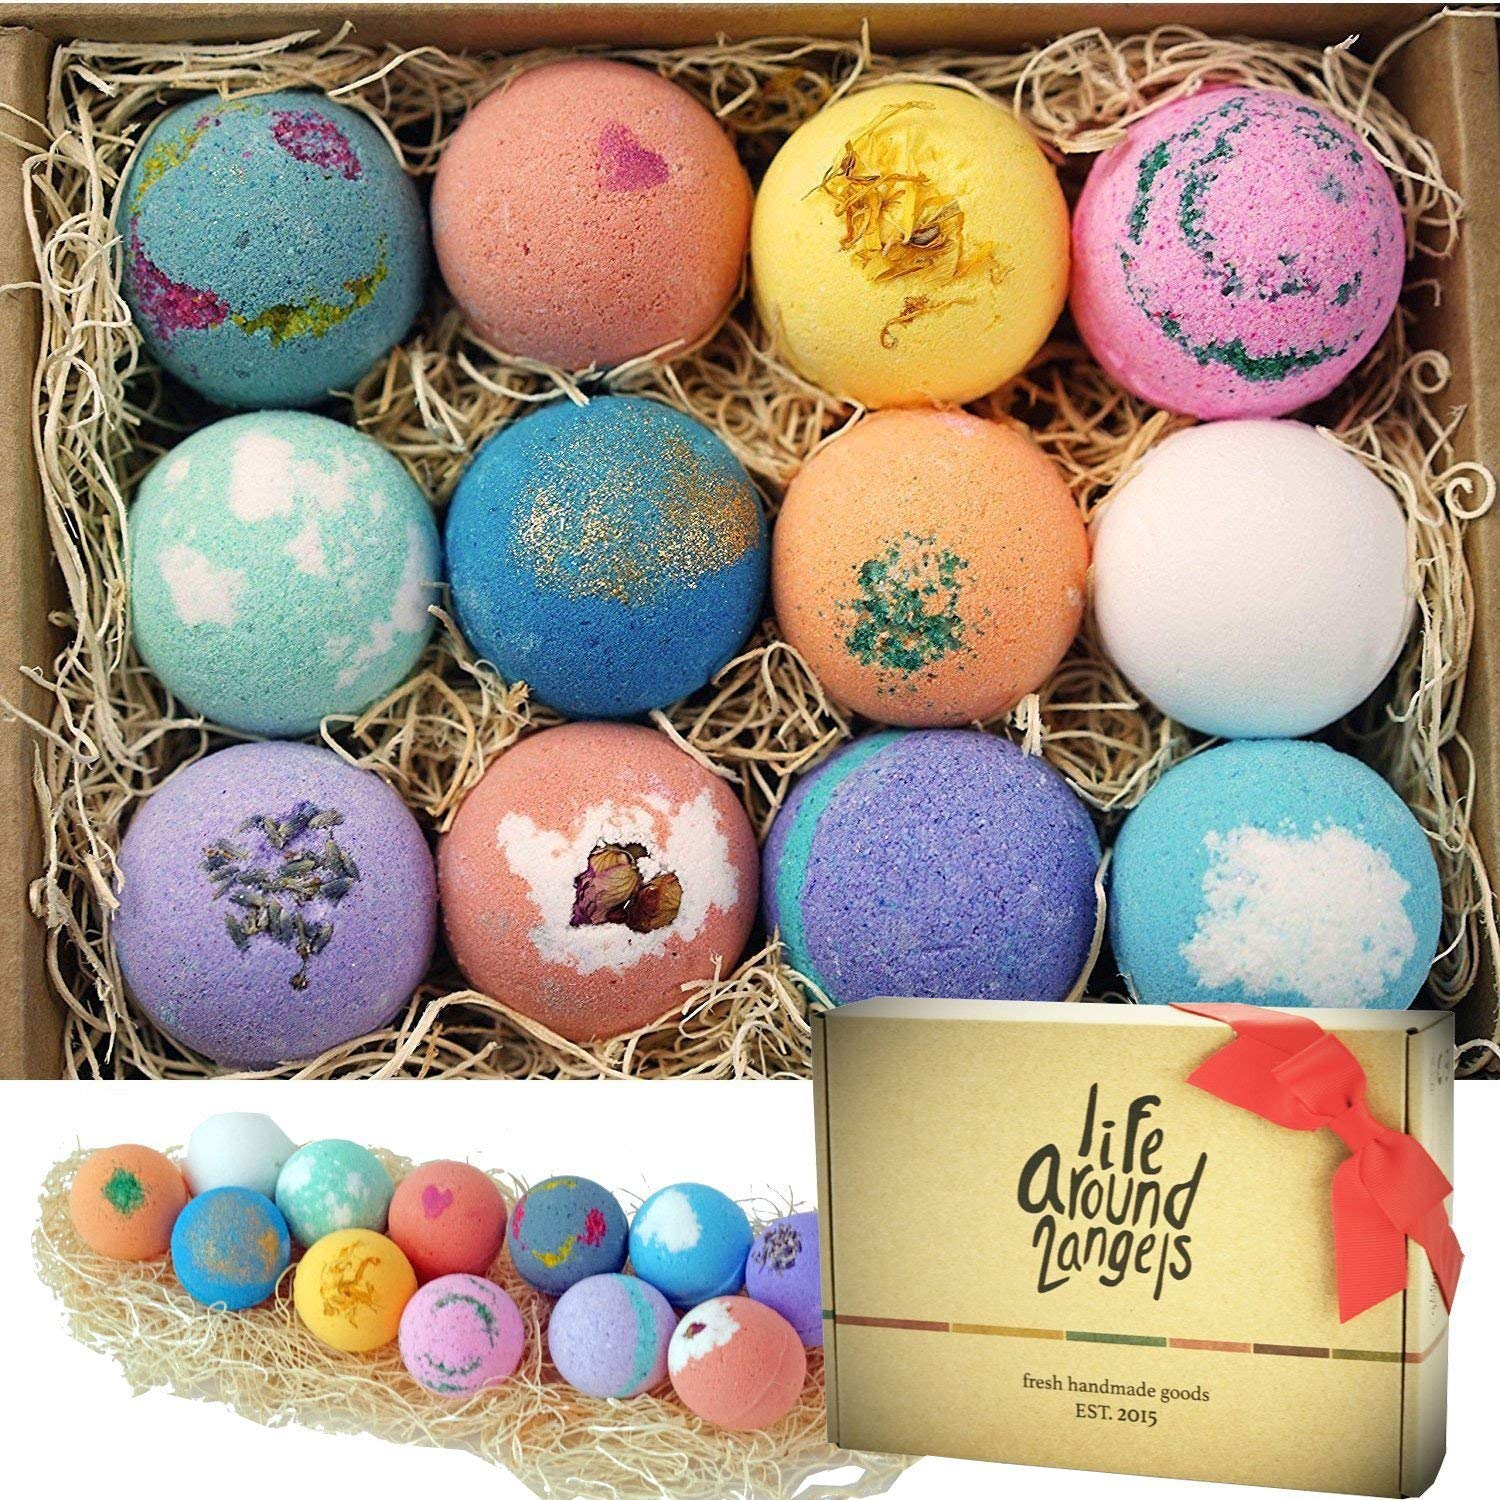 stress-relief-gifts-for-women-bath-bombs